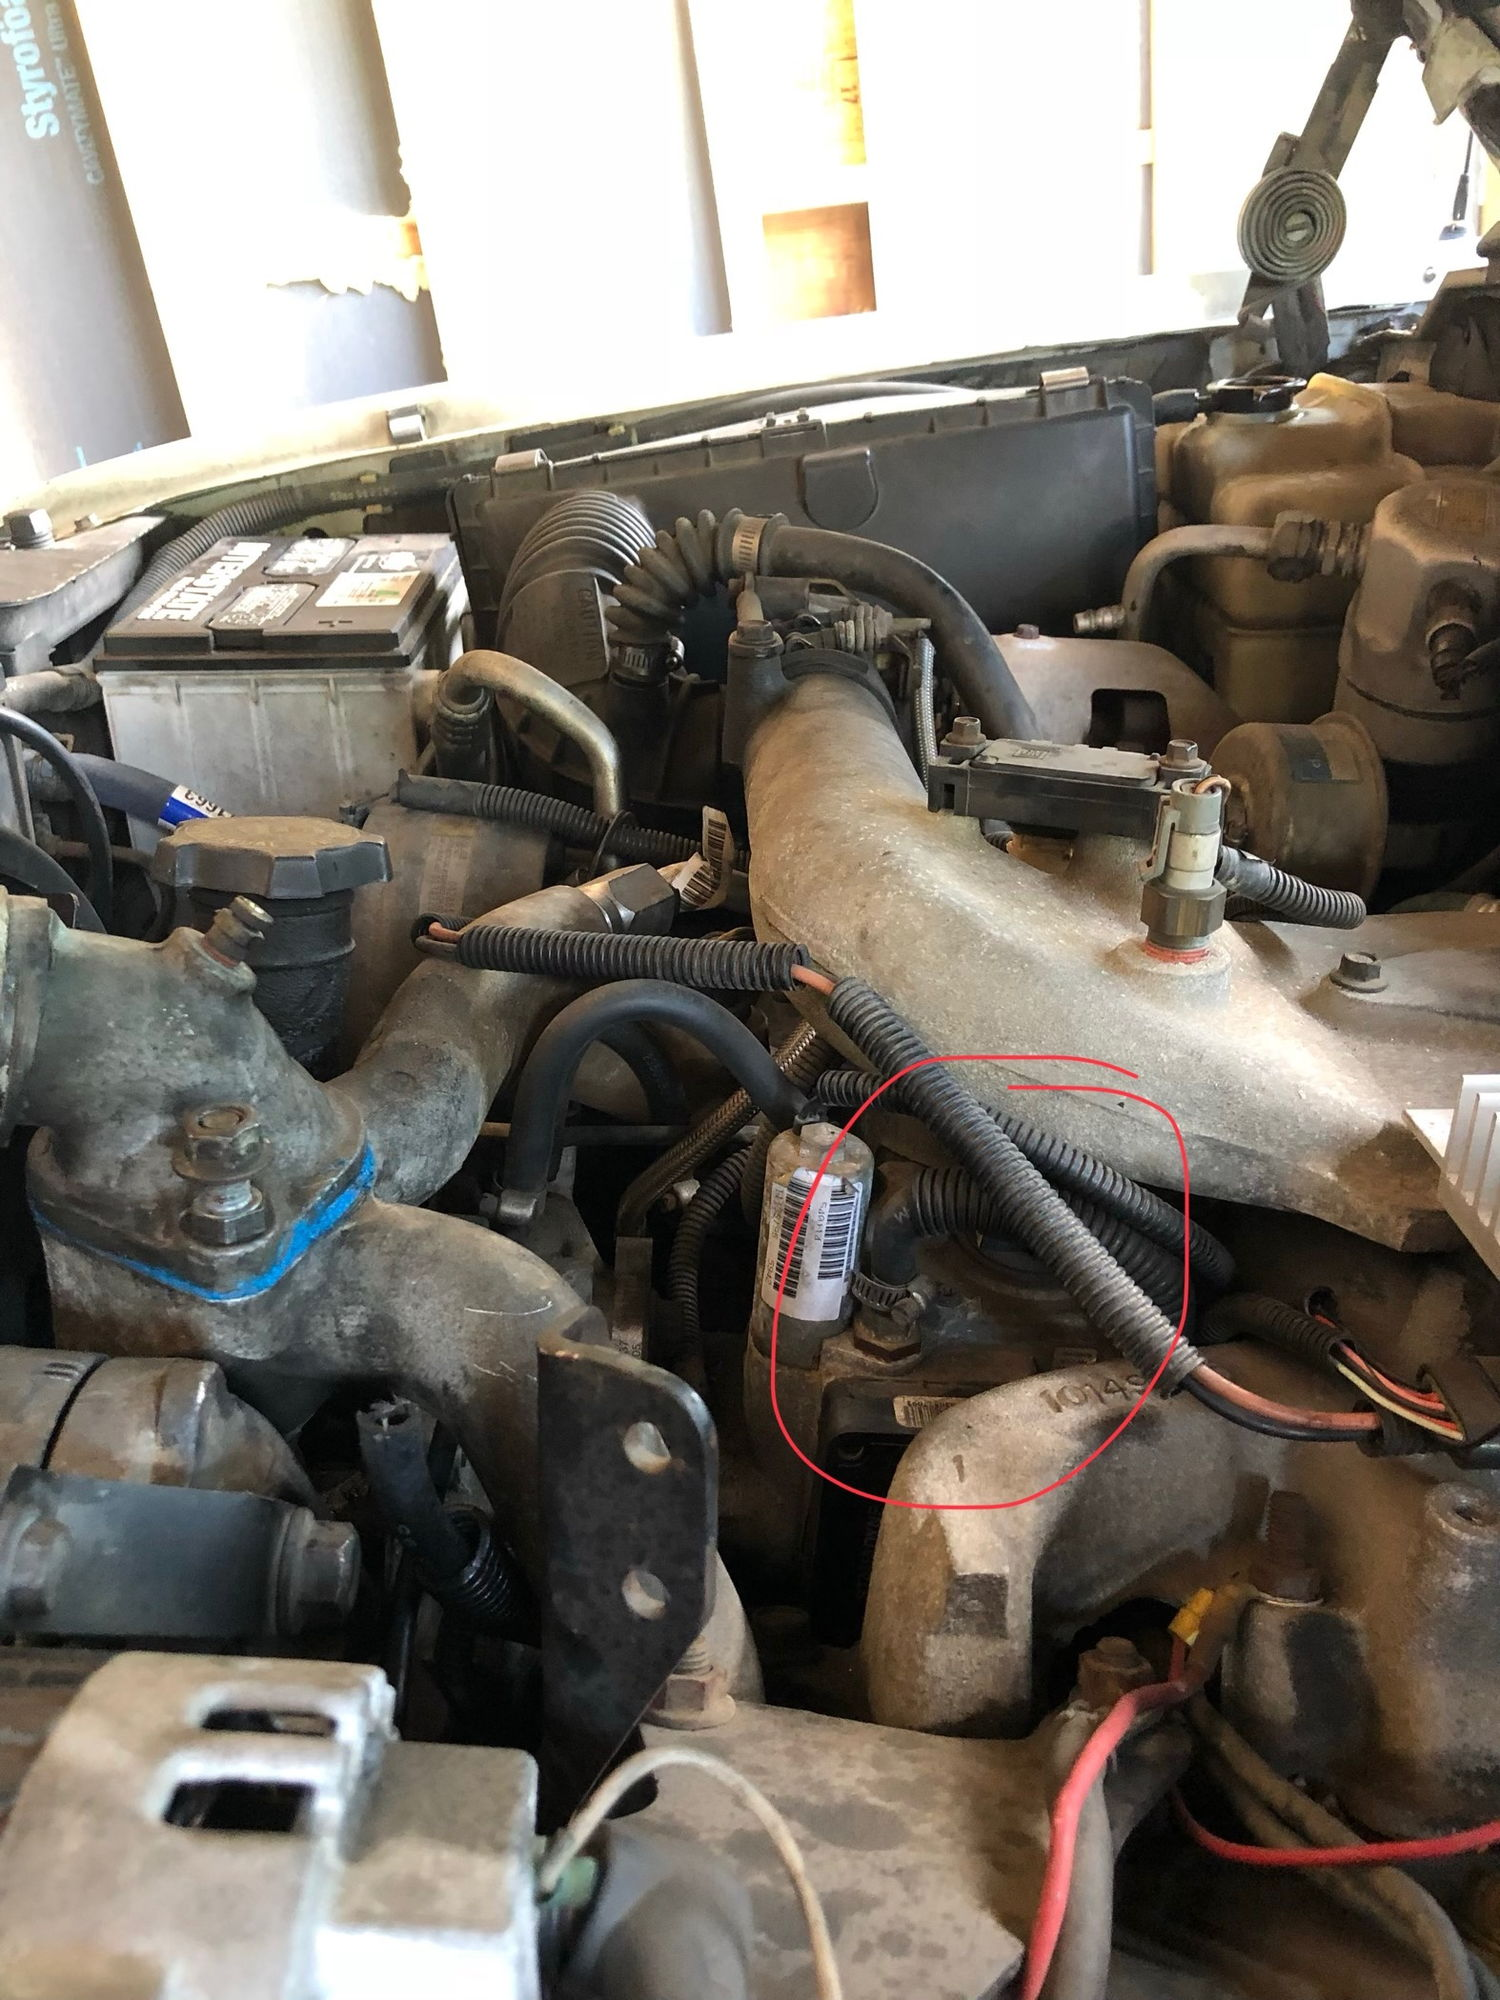 How To Bleed 65l Fuel System Diesel Bombers 2003 Chevy Silverado Filter Location I Need Replace The Hose With Line Cause Its Dry Rotted Second Picture Circled Is What Think Same But Not Positive